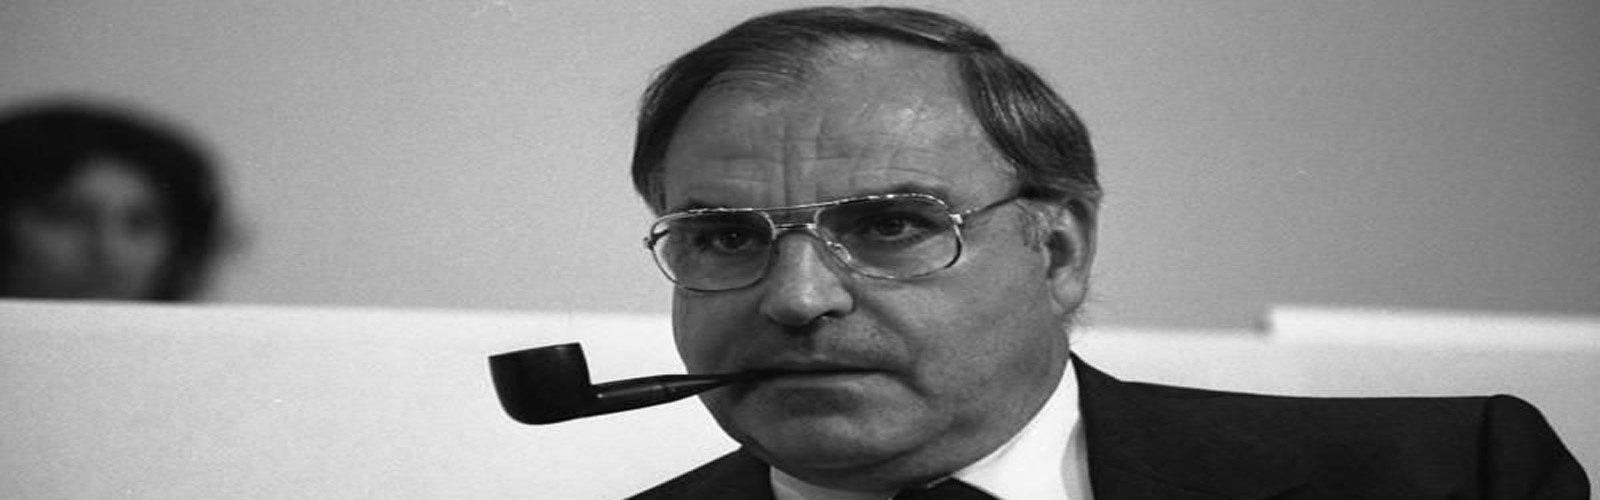 Helmut Kohl: The father of German reunification